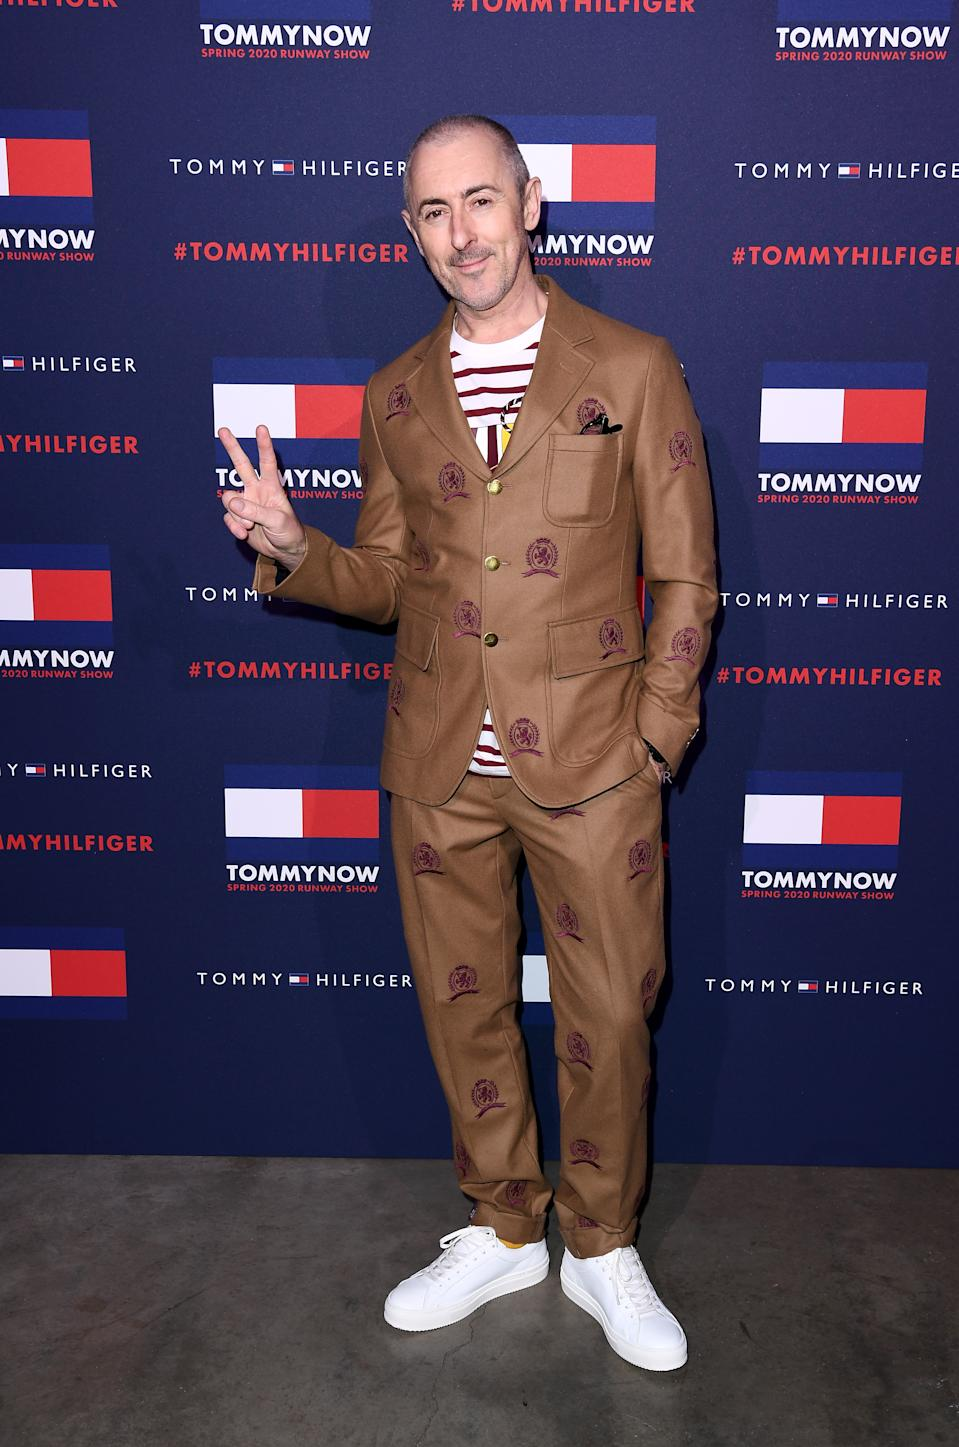 Alan Cumming arrives at the Tommy Hilfiger show. (Getty Images)